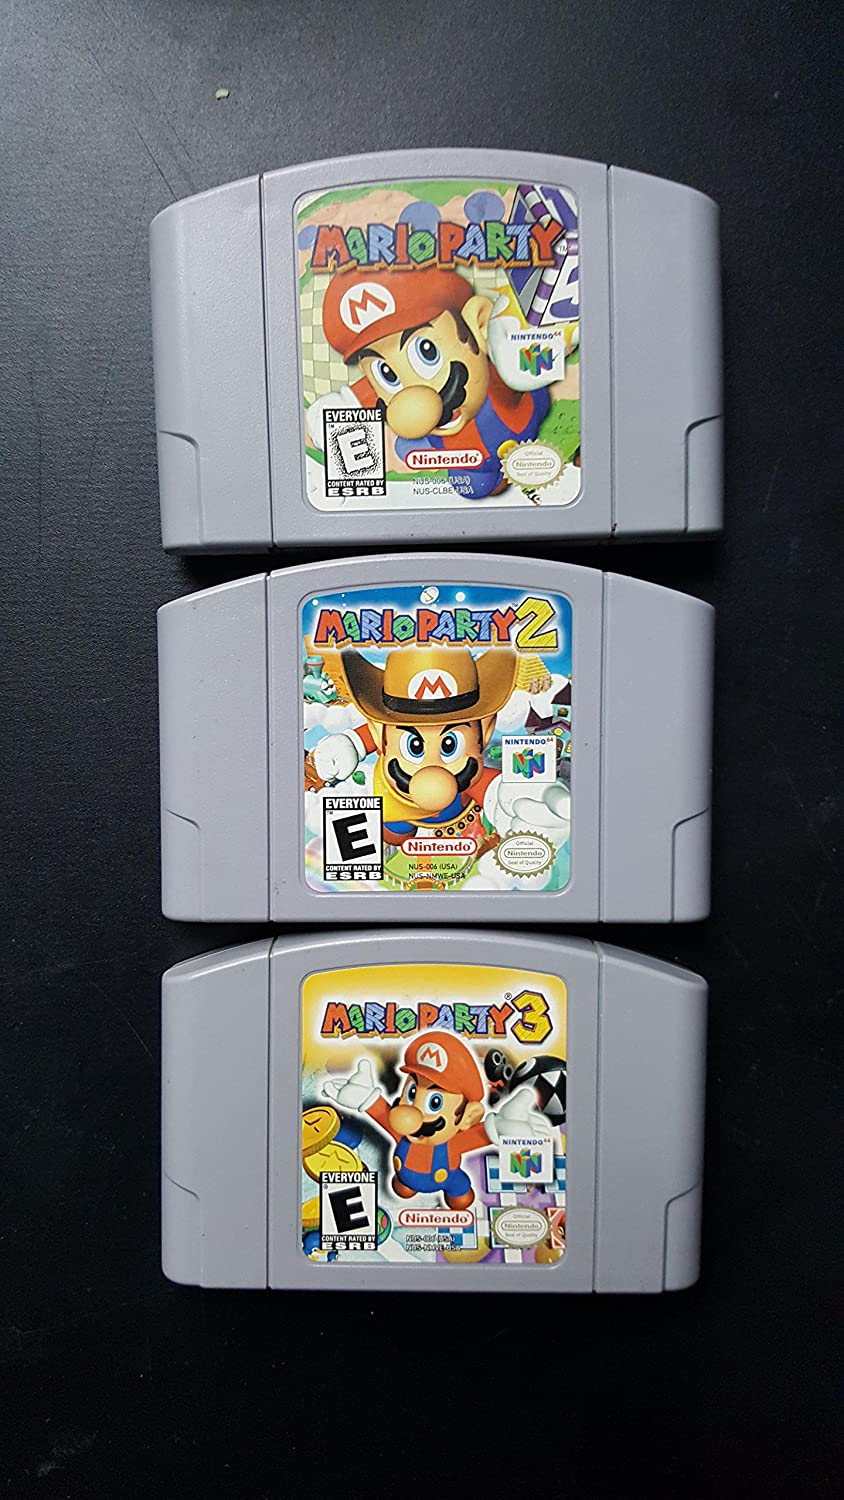 Complete Mario Party Nintendo 64 Collection: Mario Party 1, 2, and 3